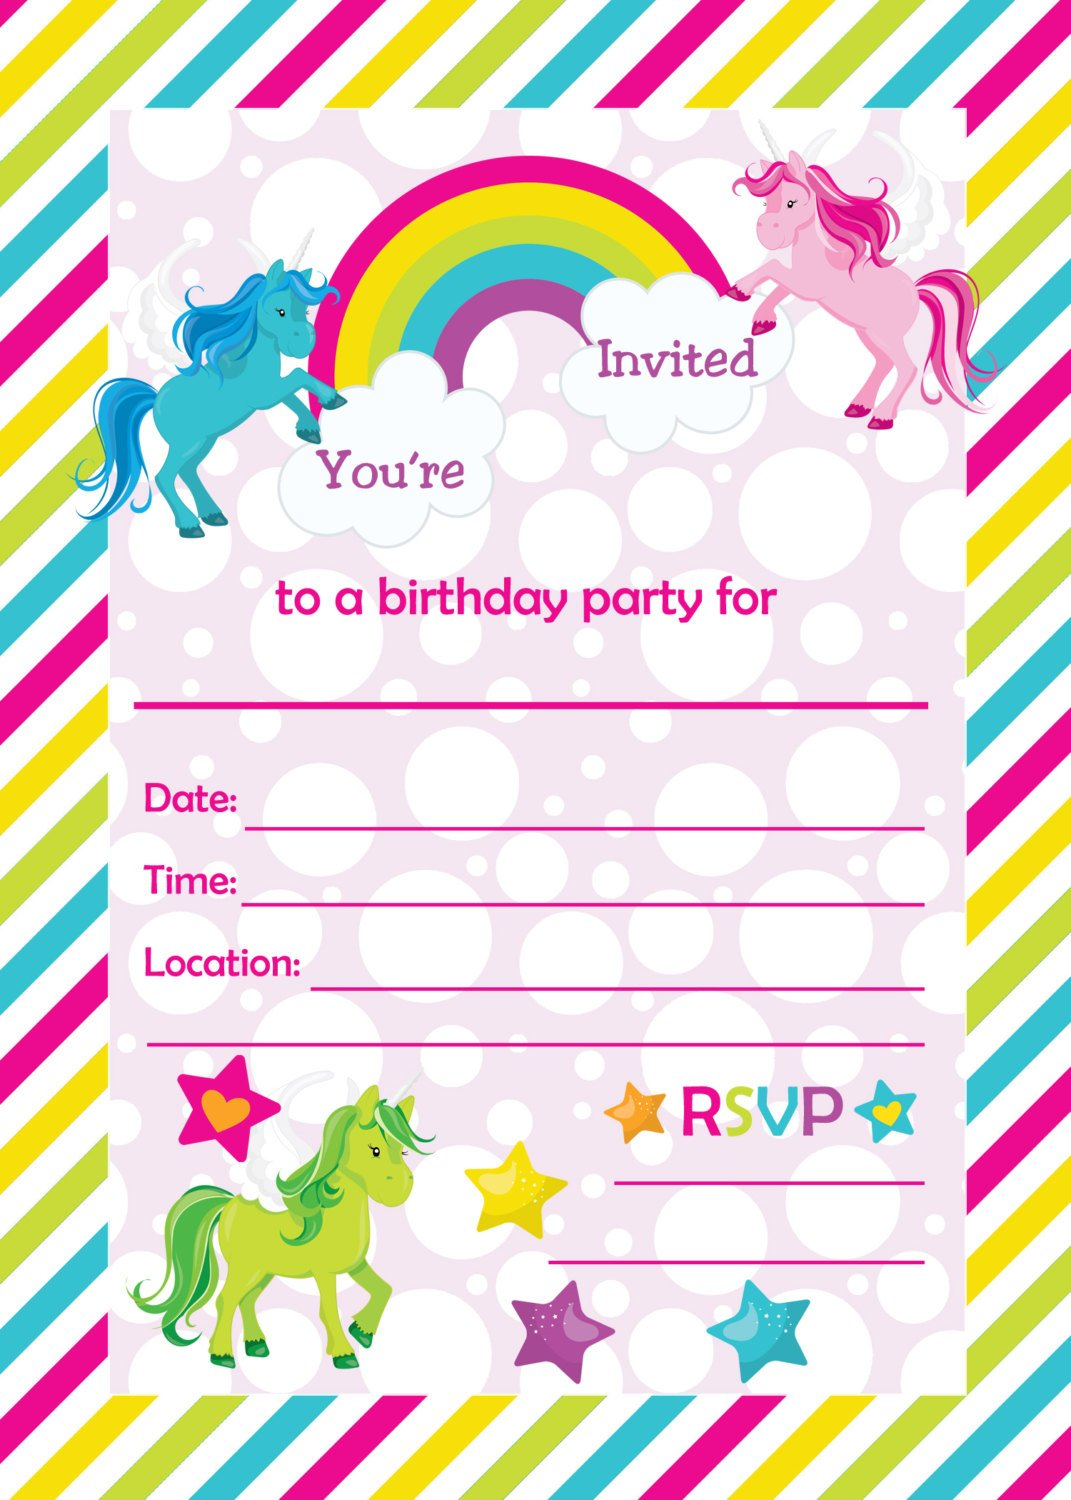 FREE Printable Golden Unicorn Birthday Invitation Template | FREE ...